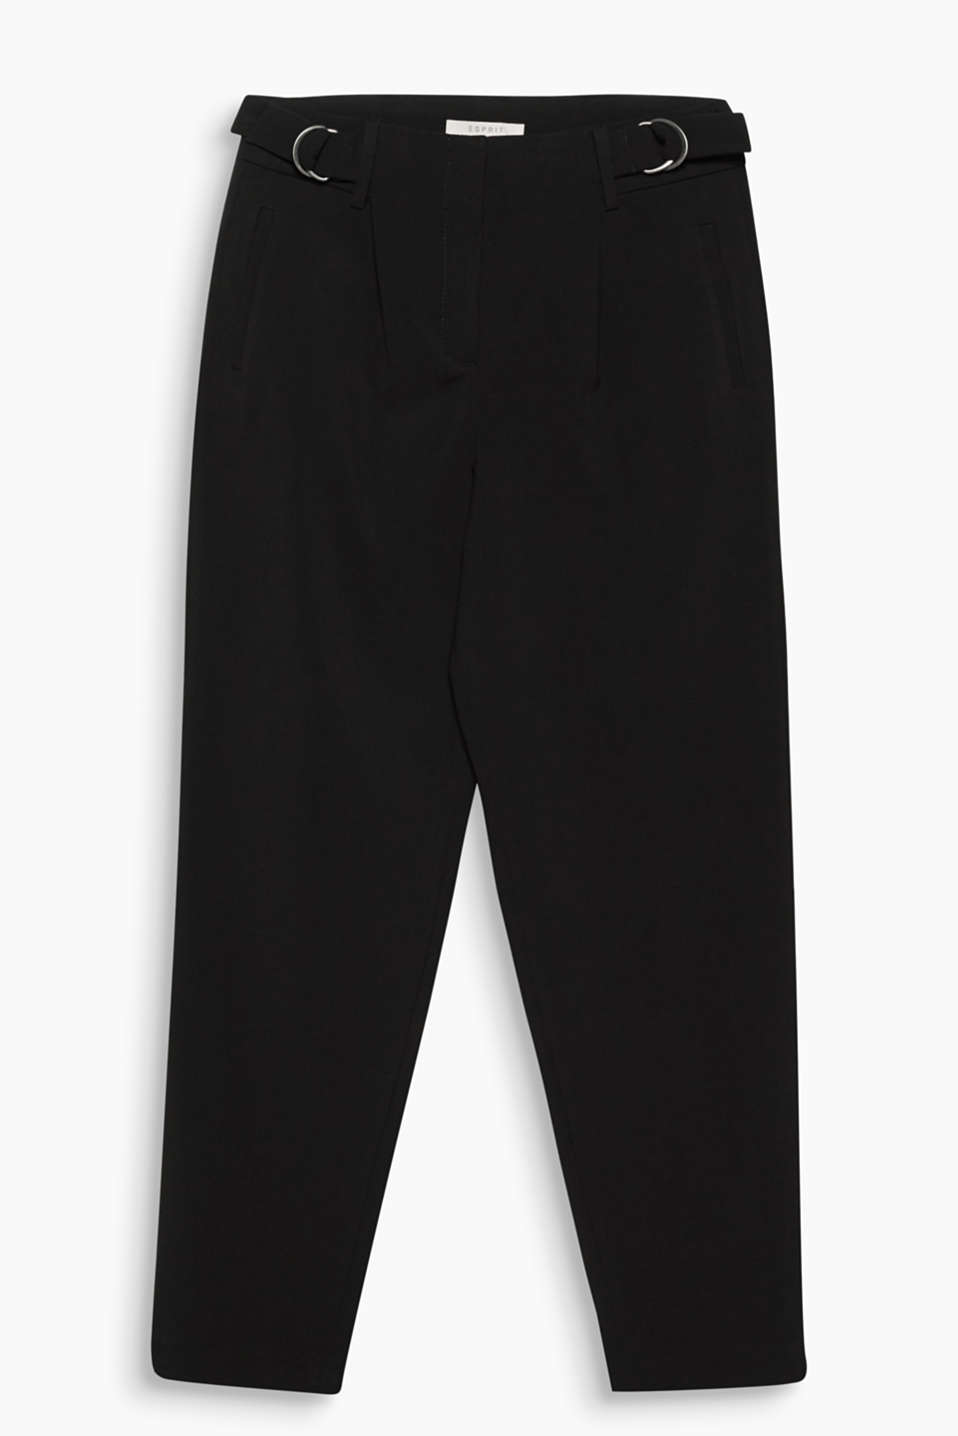 Wide trousers with cropped legs in a soft fabric blend with added stretch for comfort